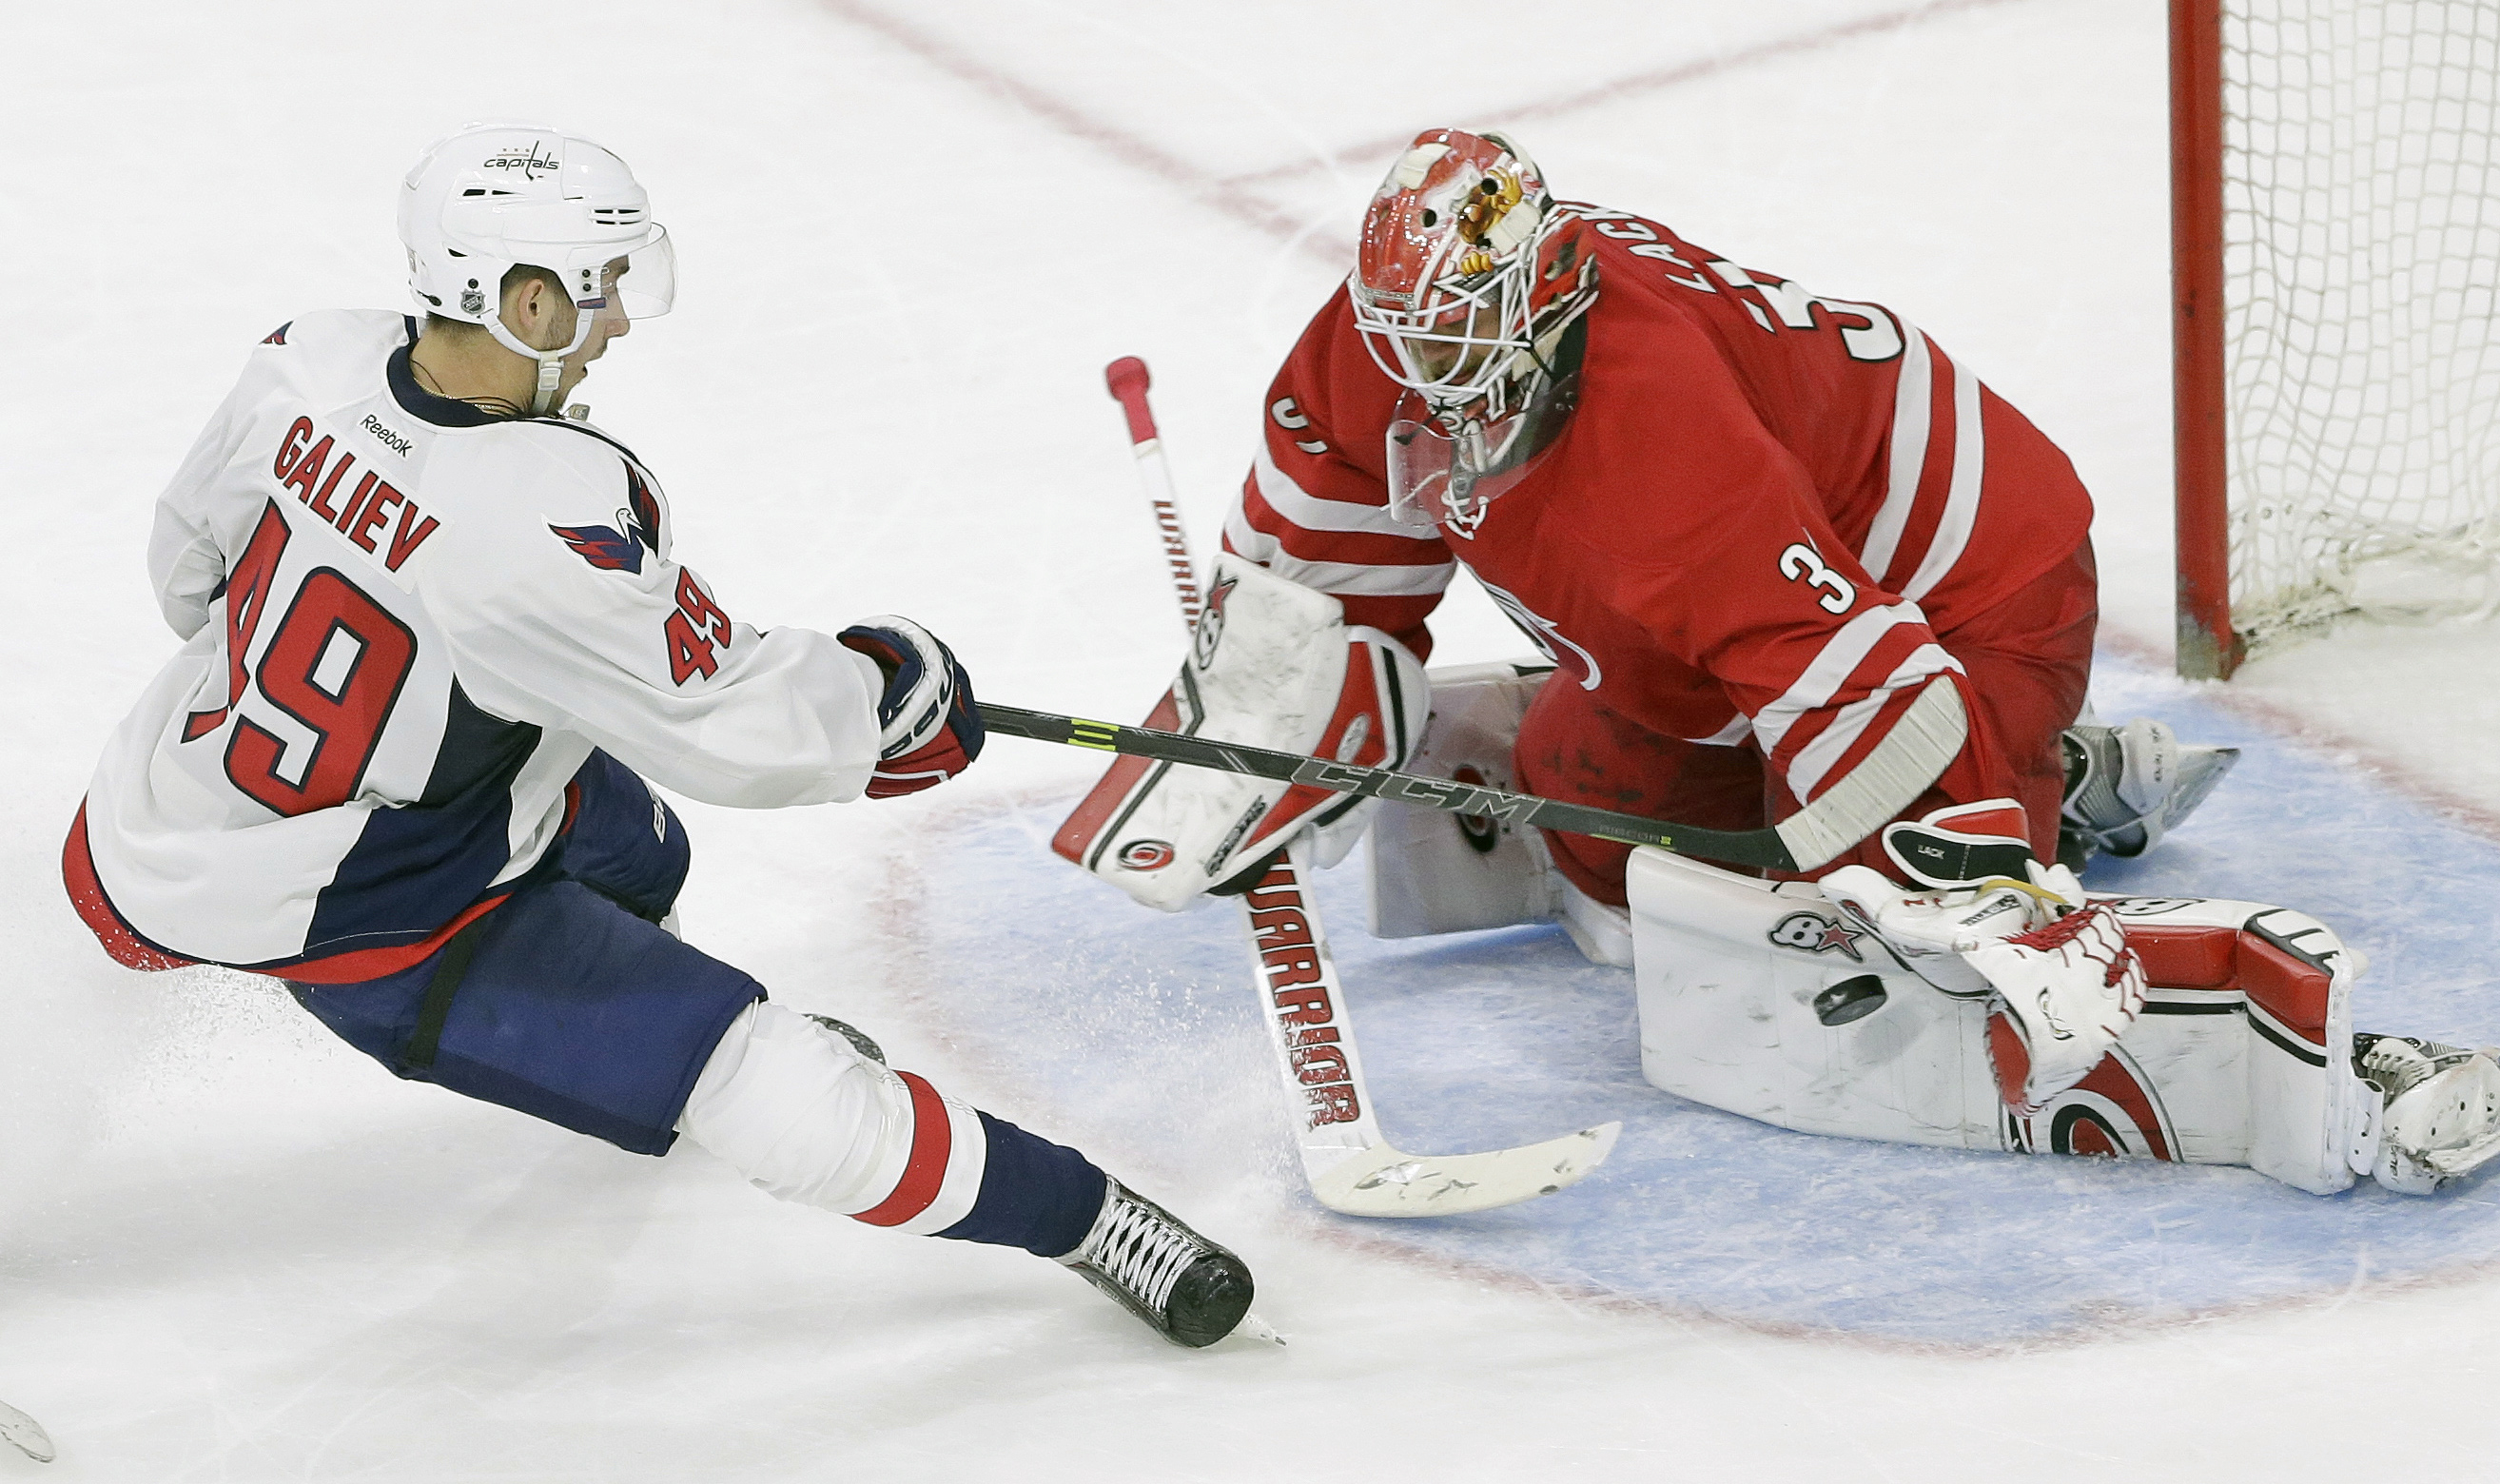 Carolina Hurricanes goalie Eddie Lack, of Sweden, defends against Washington Capitals' Stanislav Galiev (49), of Russia, during the third period of an NHL preseason hockey game in Raleigh, N.C., Wednesday, Sept. 30, 2015. Carolina won 4-3 in a shootout. (